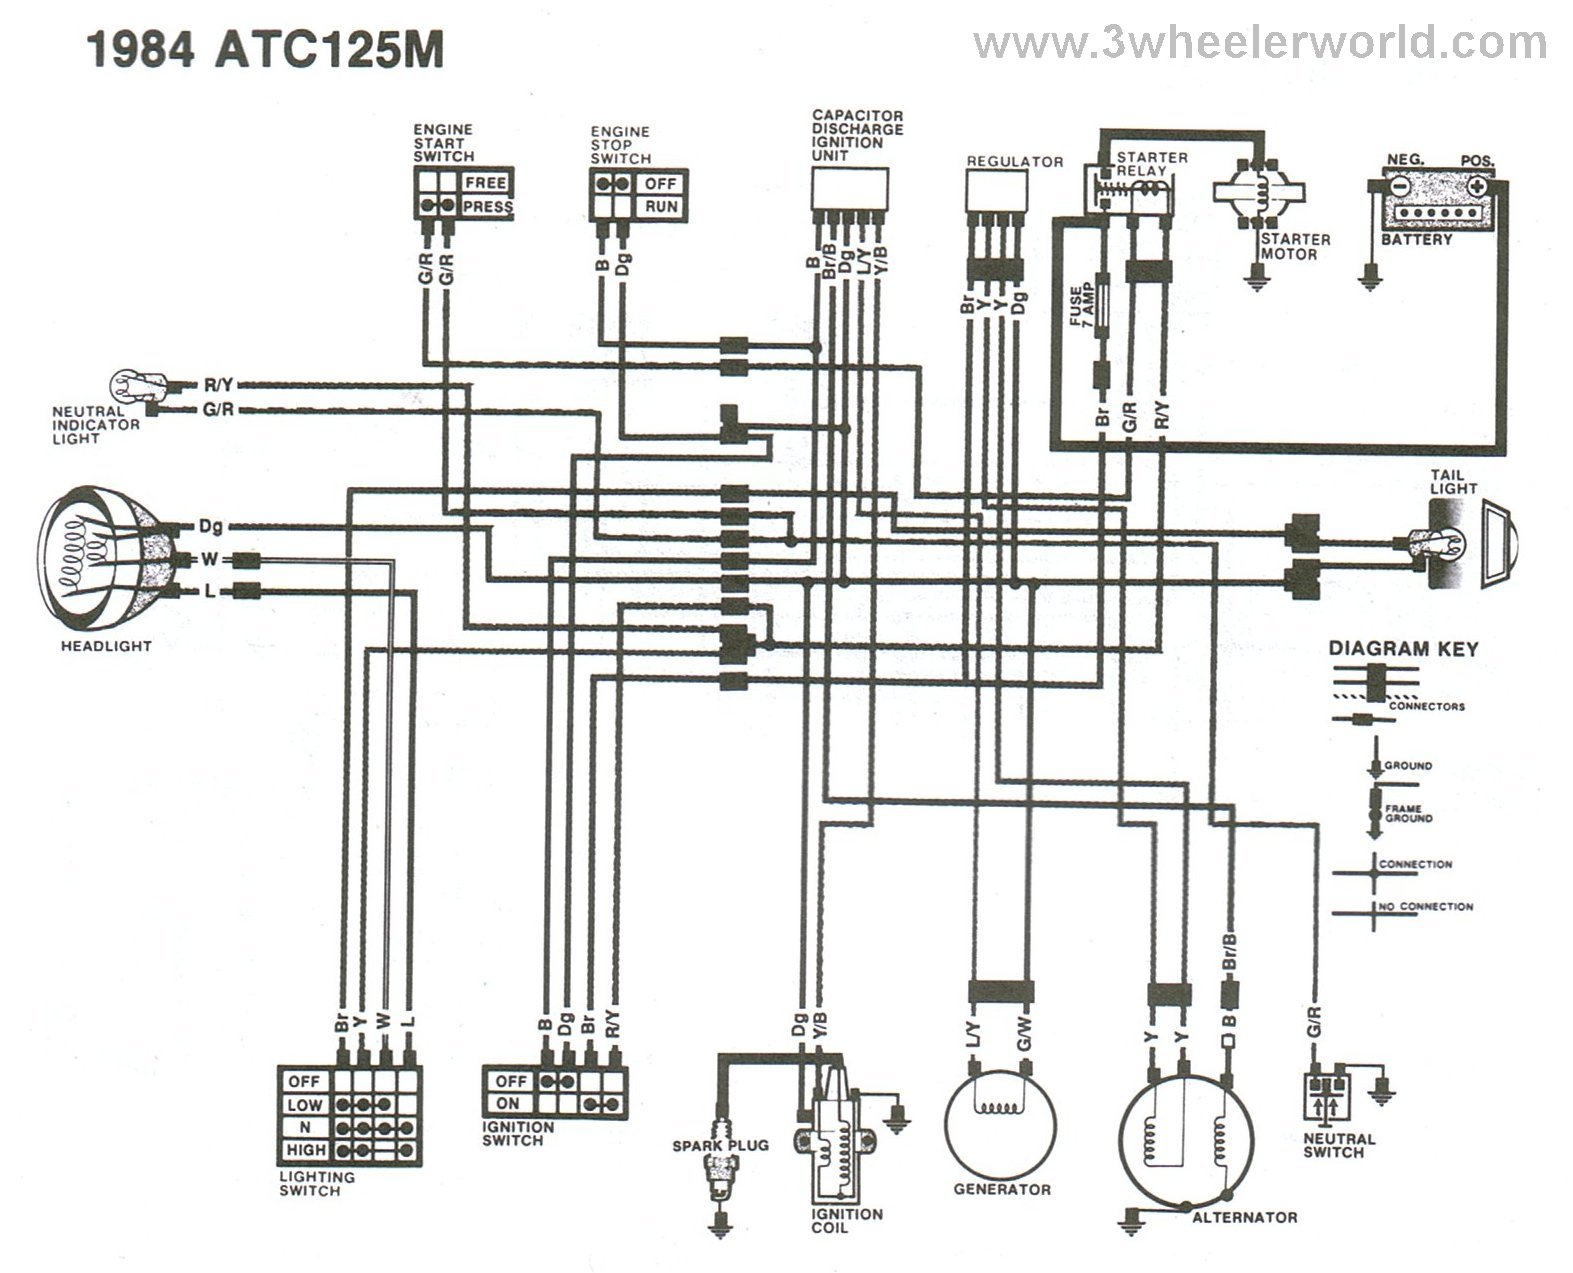 Atc Camper Wiring Diagram Wiring Diagram Schemes Guitar Wiring Diagrams Atc  Wiring Diagrams